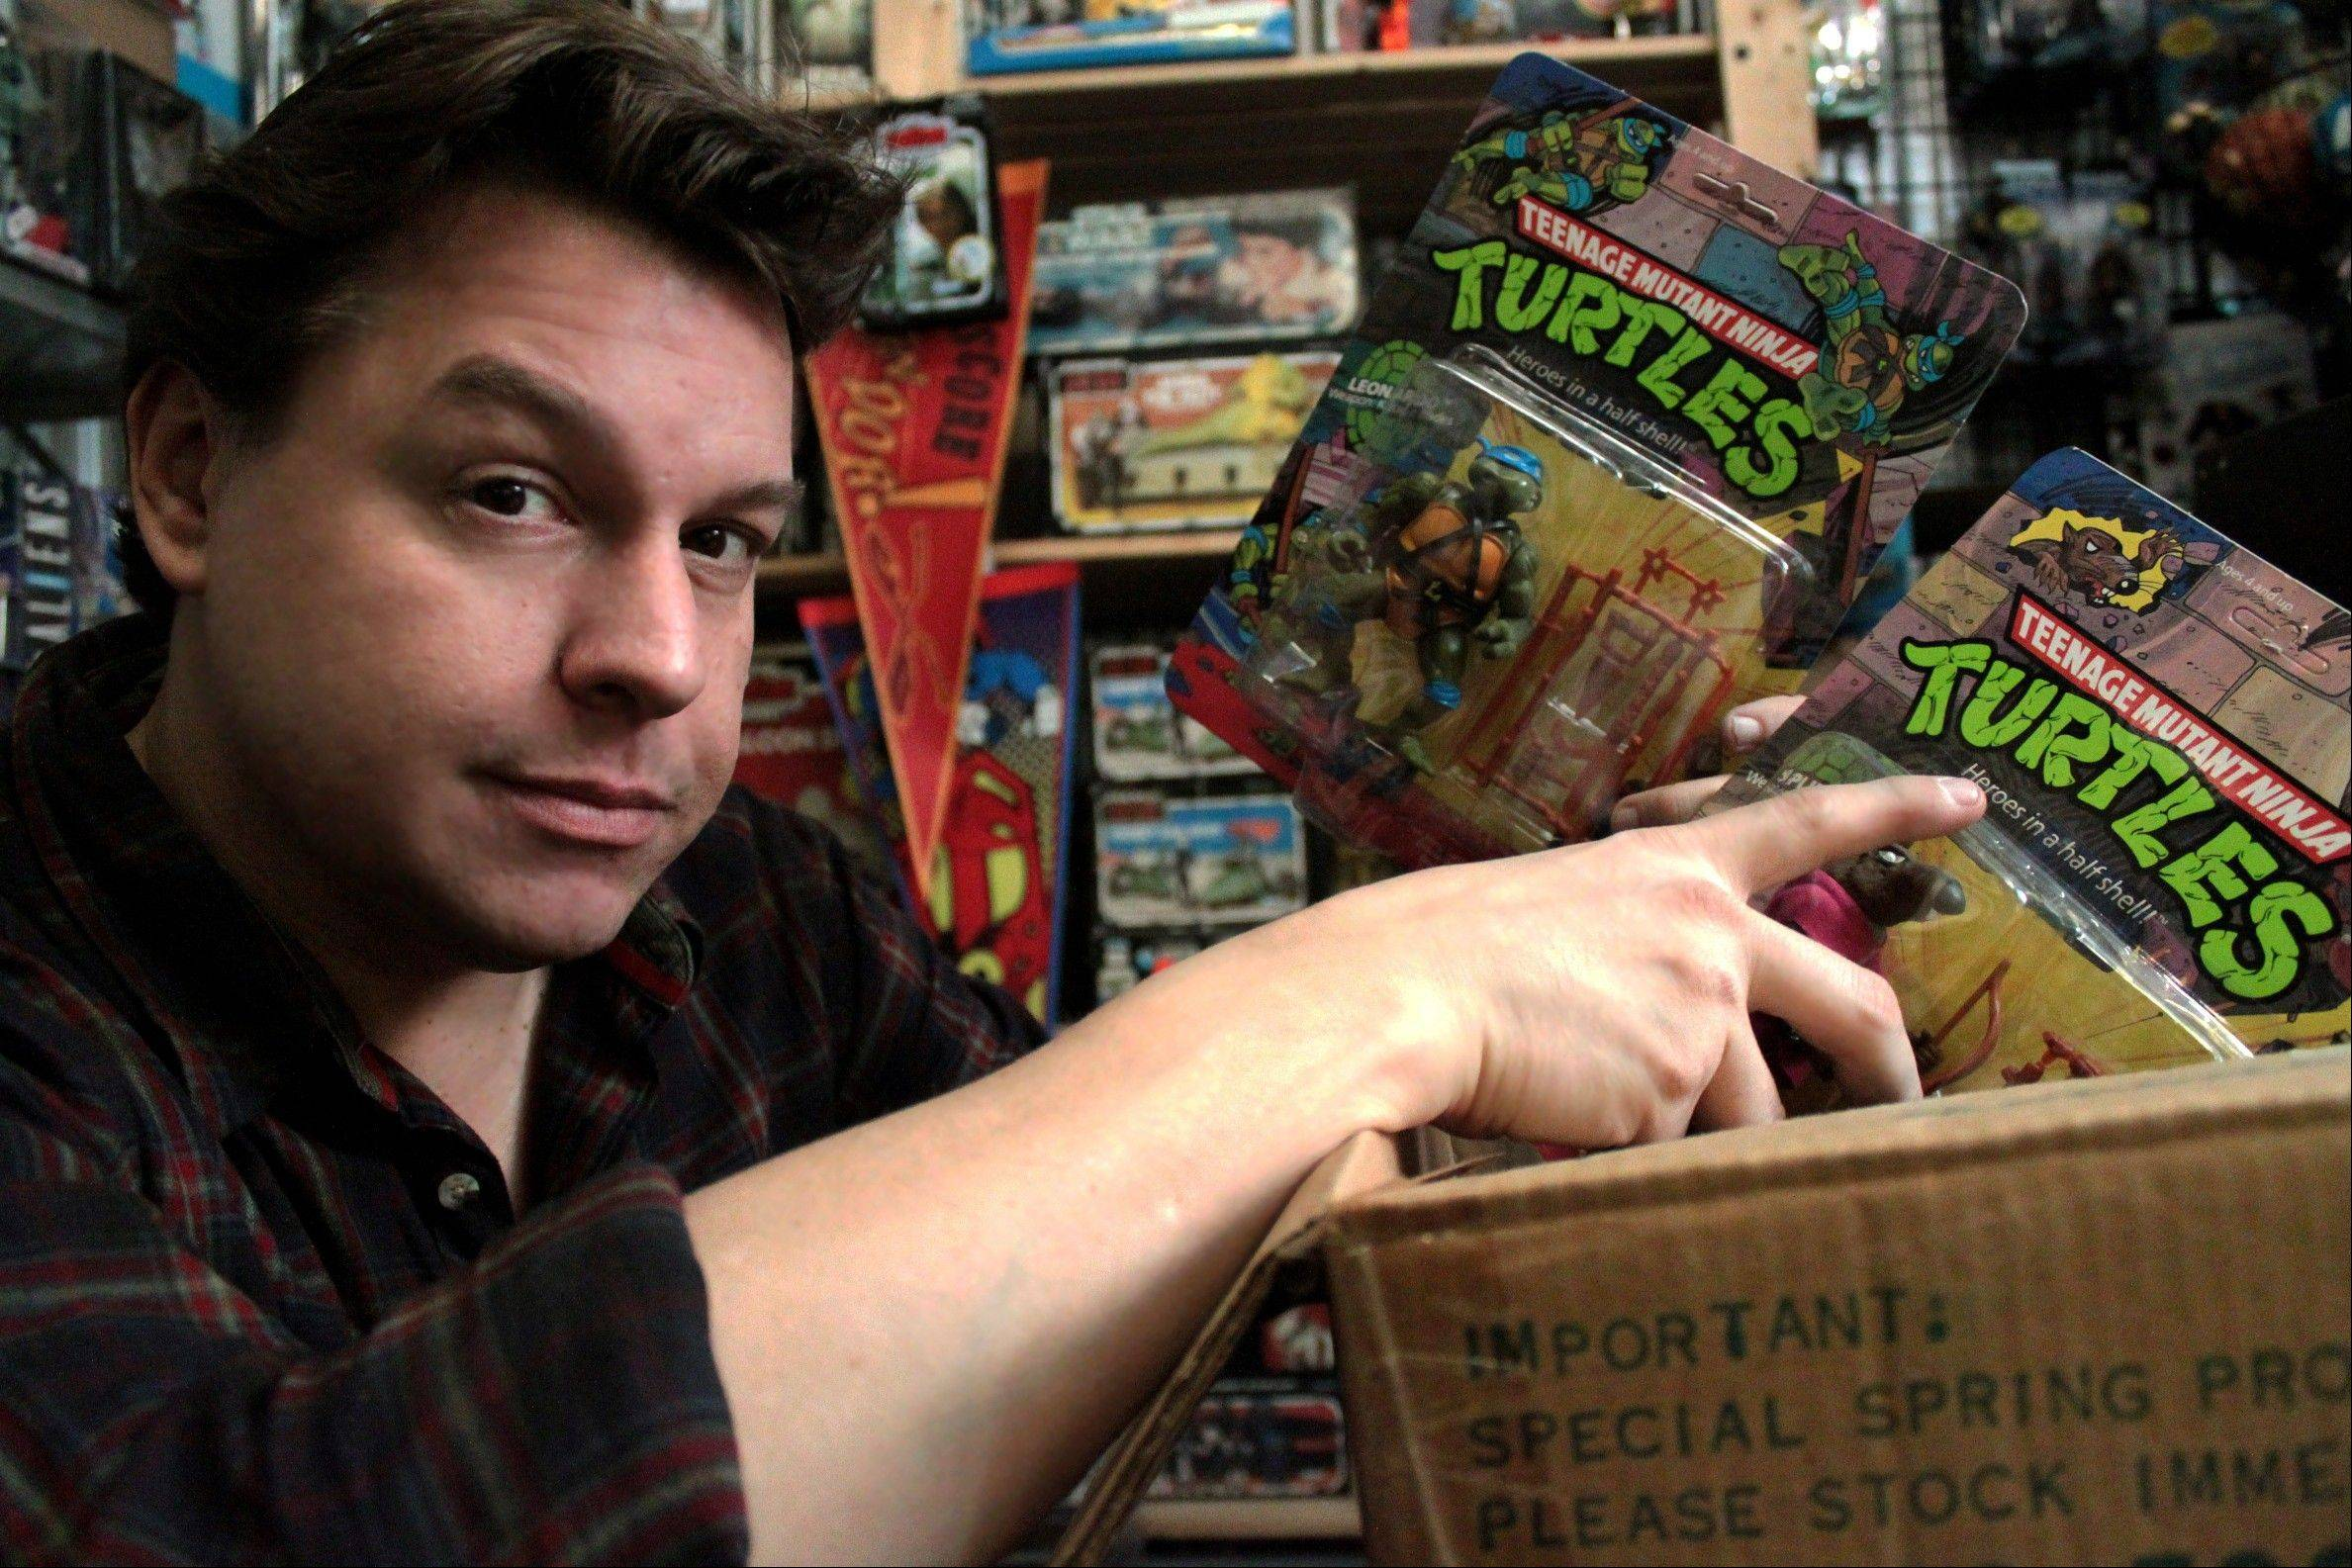 "In this publicity image provided by the Travel Channel, toy hunter Jordan Hembrough unpacks a box of the original ""Heroes on the Half Shell"" from Teenage Mutant Ninja Turtles. ""Toy Hunter"" premieres on the Travel Channel on Aug. 15."